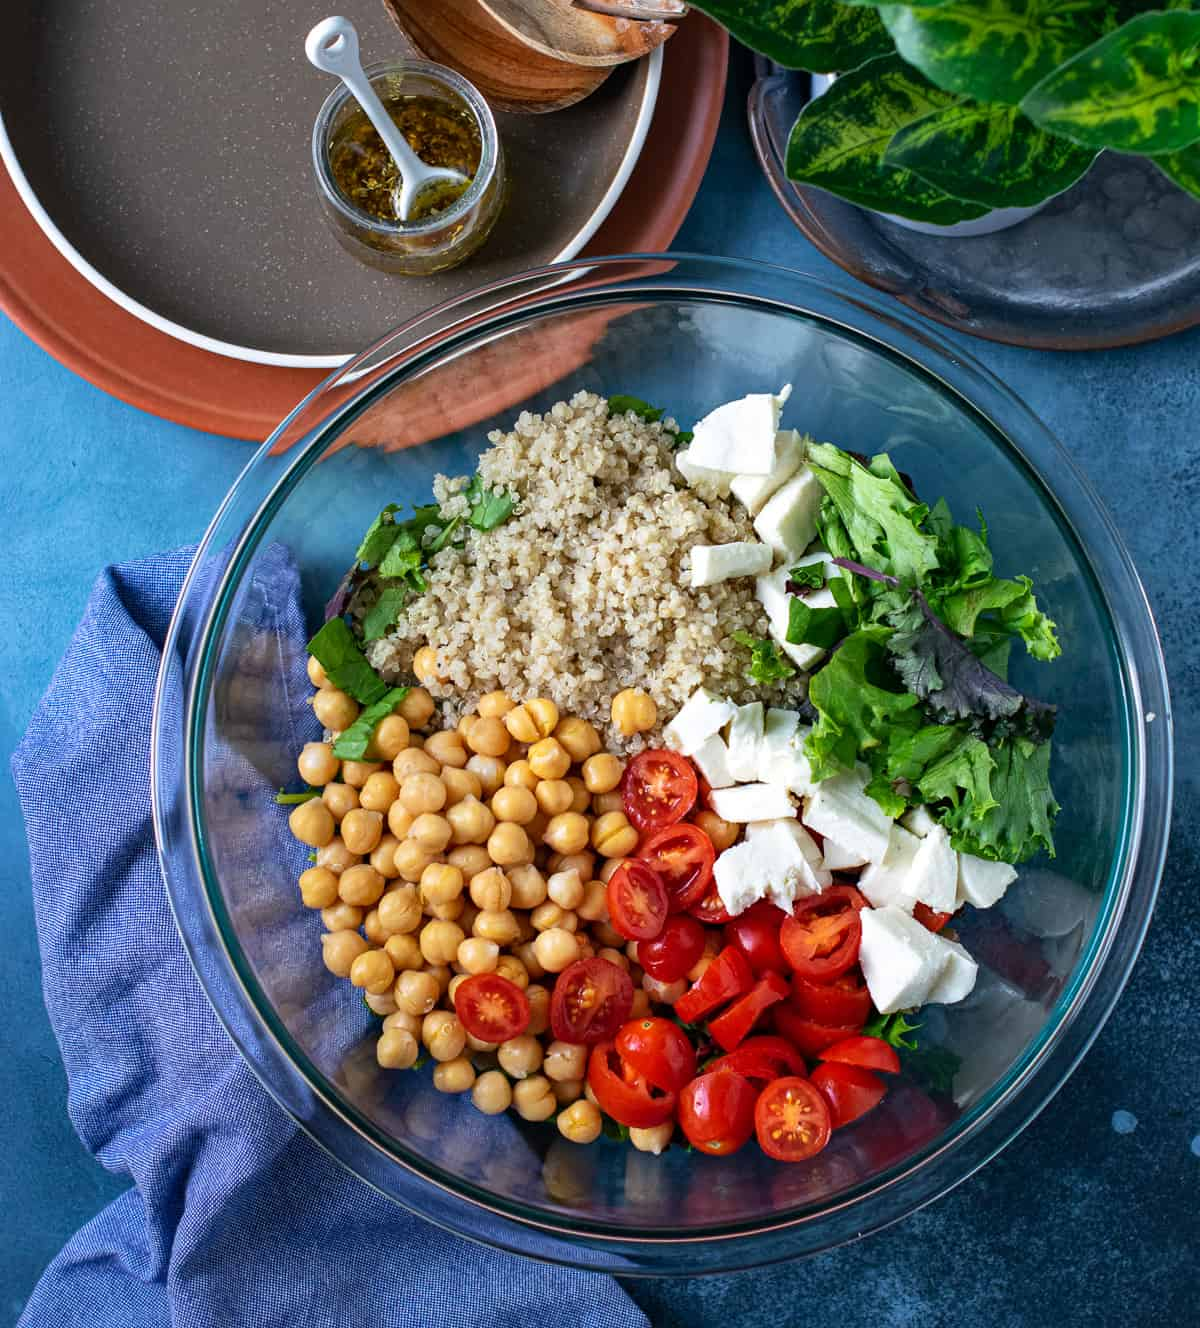 Ingredients to make Caprese salad put in a bowl